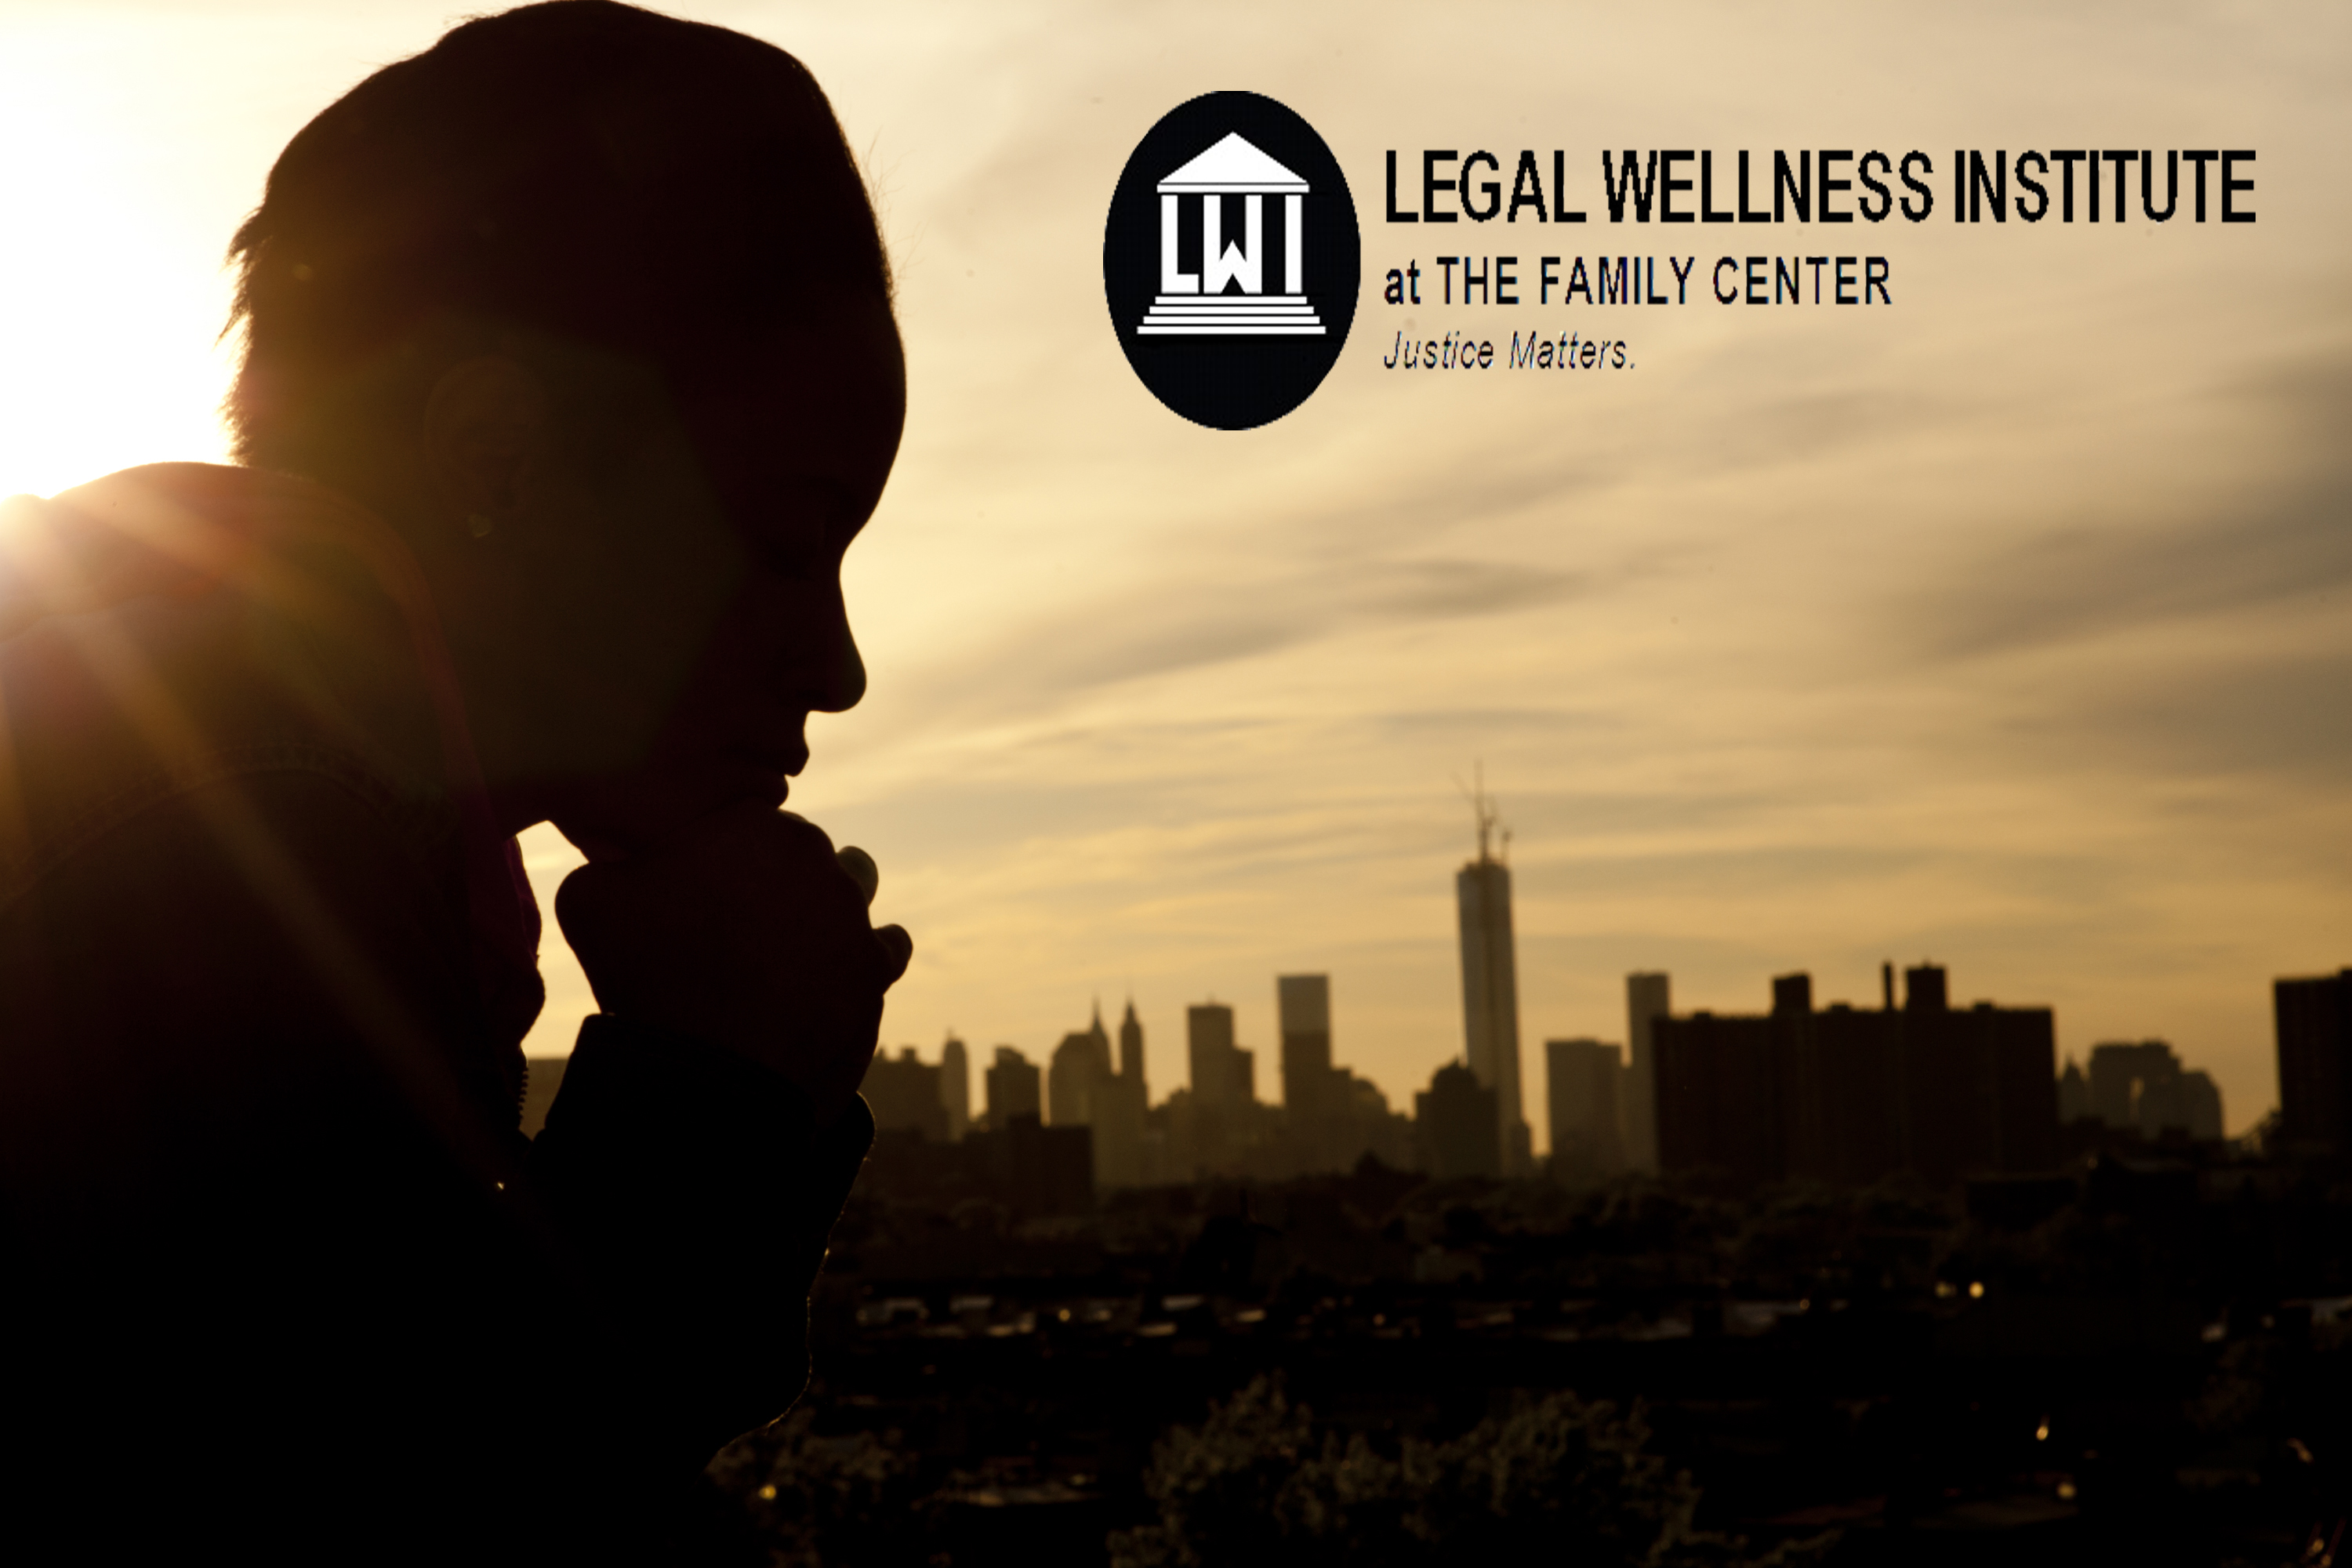 Legal Wellness Institute